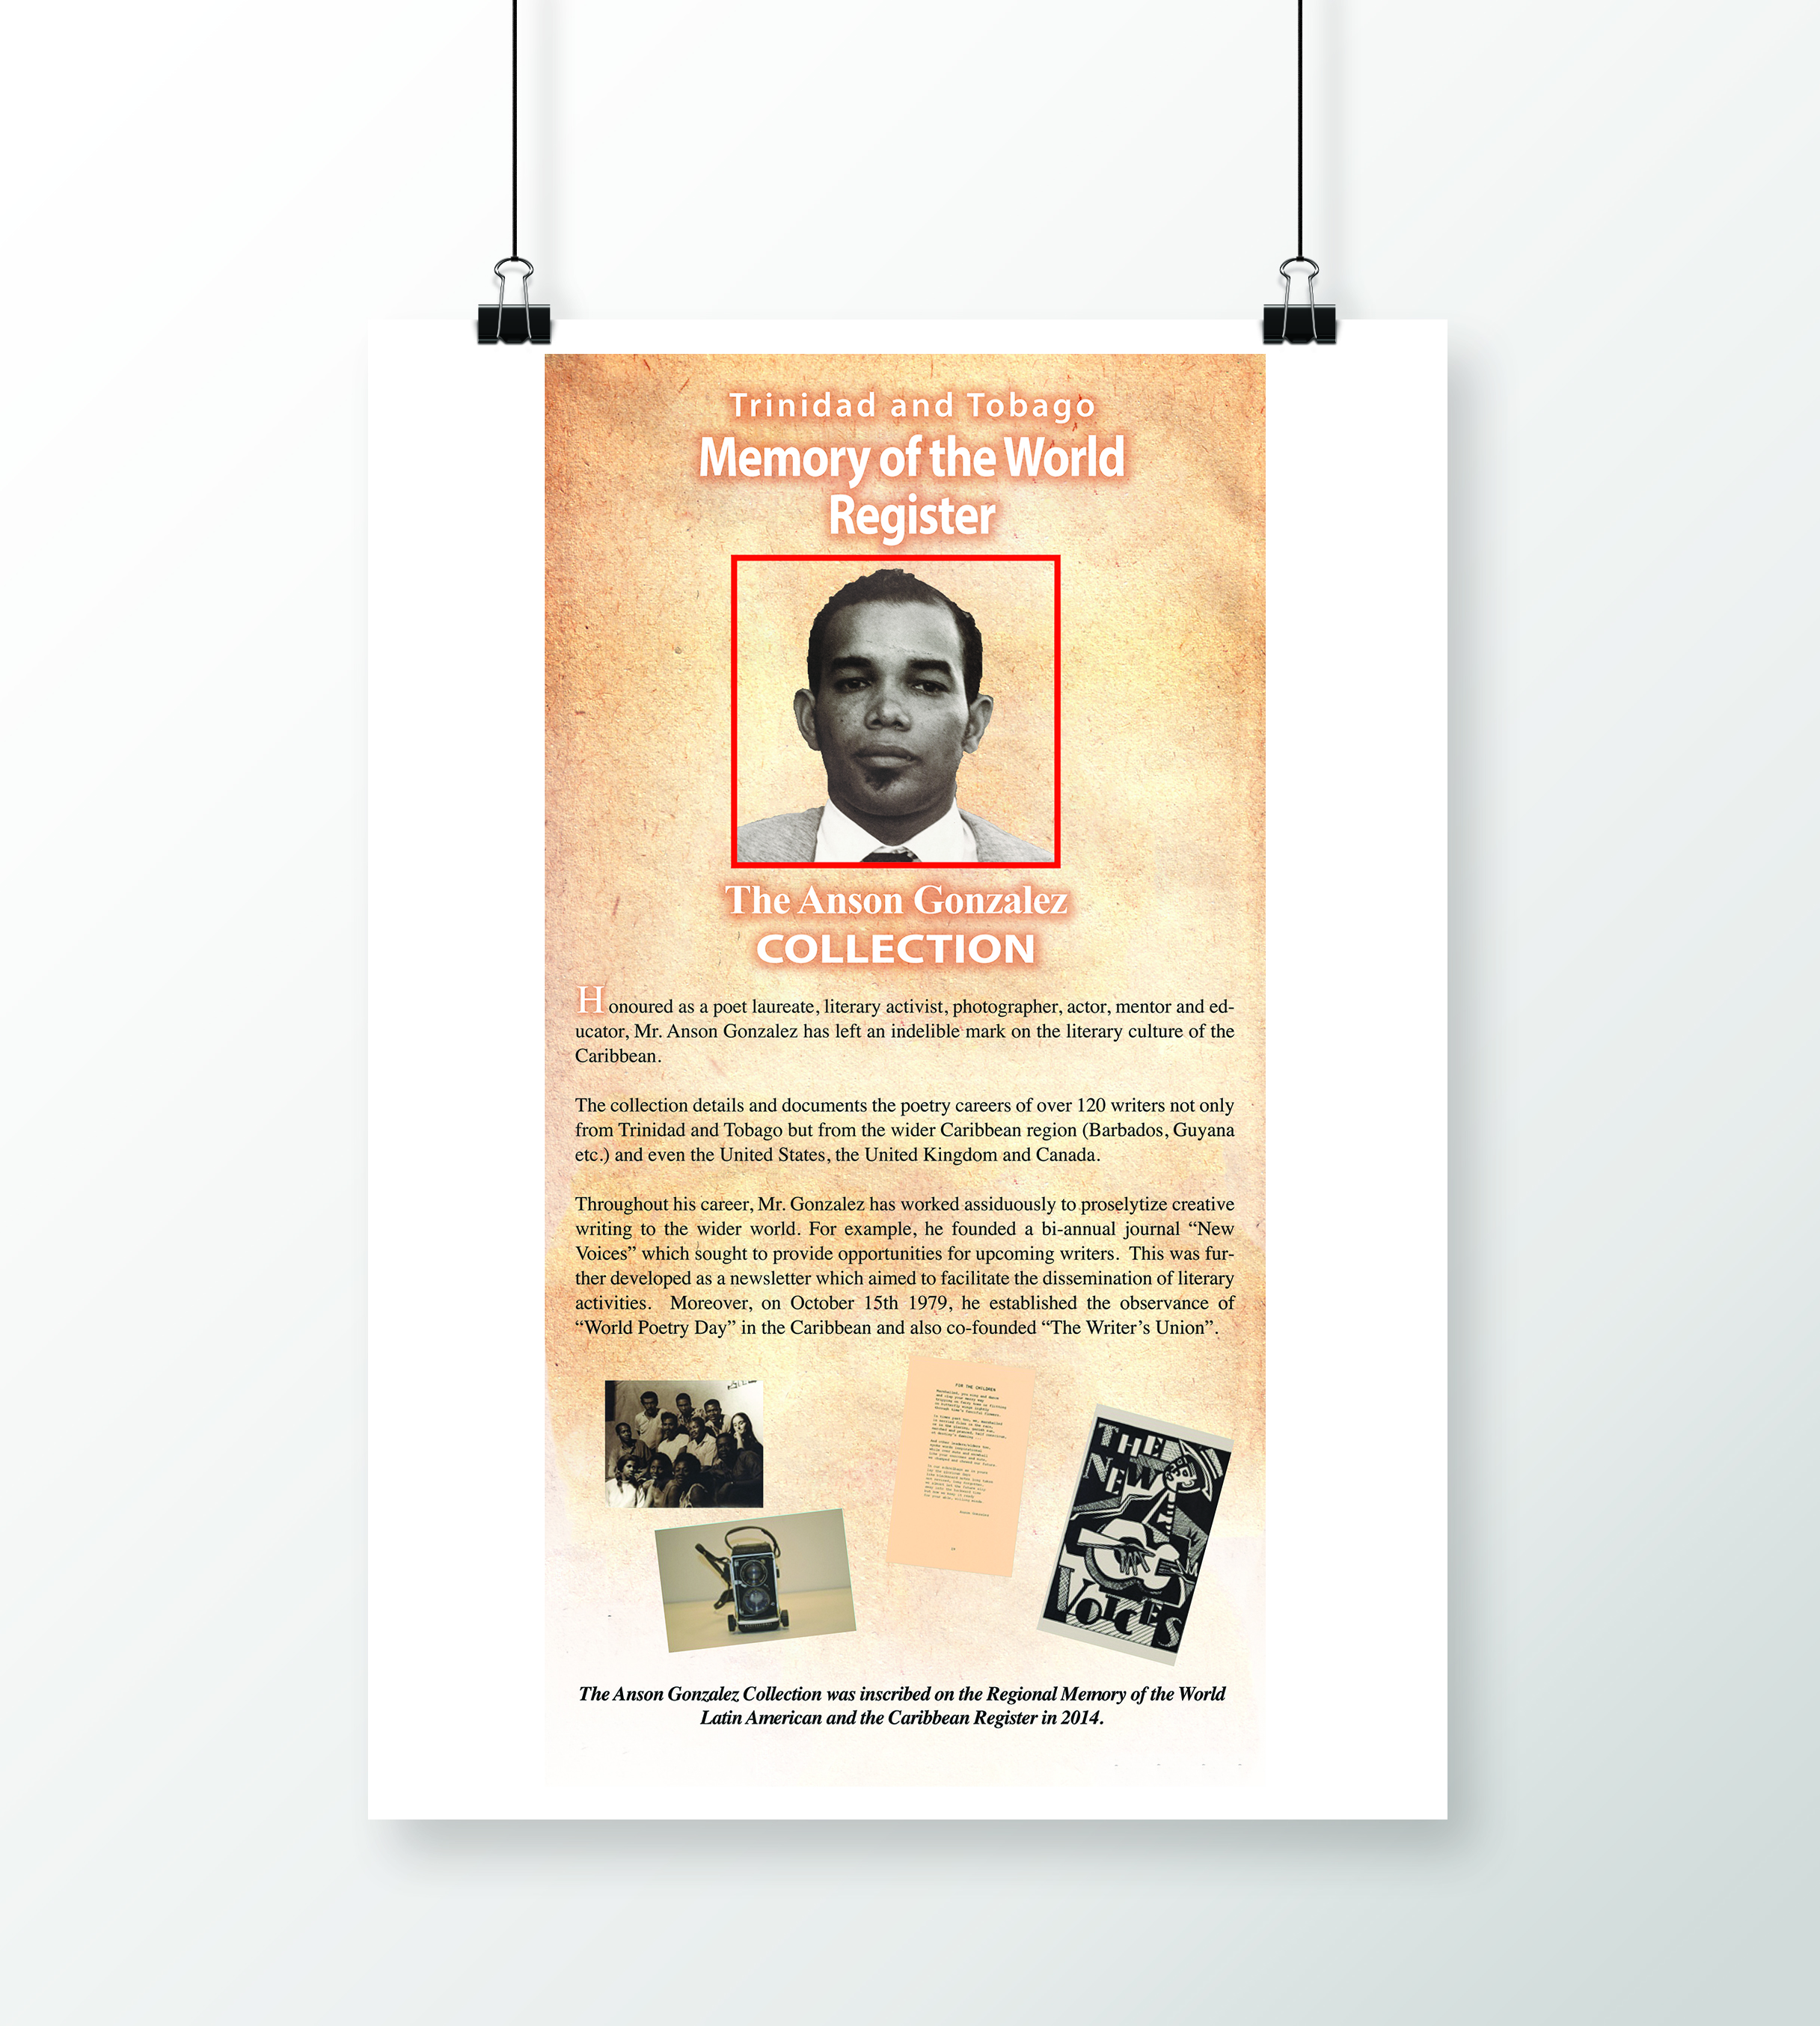 Memory of the World Register Exhibition - Client: Trinidad and Tobago National Commission for UNESCODescription: Design and Layout Large Posters for an Exhibition on the various local collections of the Memory of the World Register. Client requested an